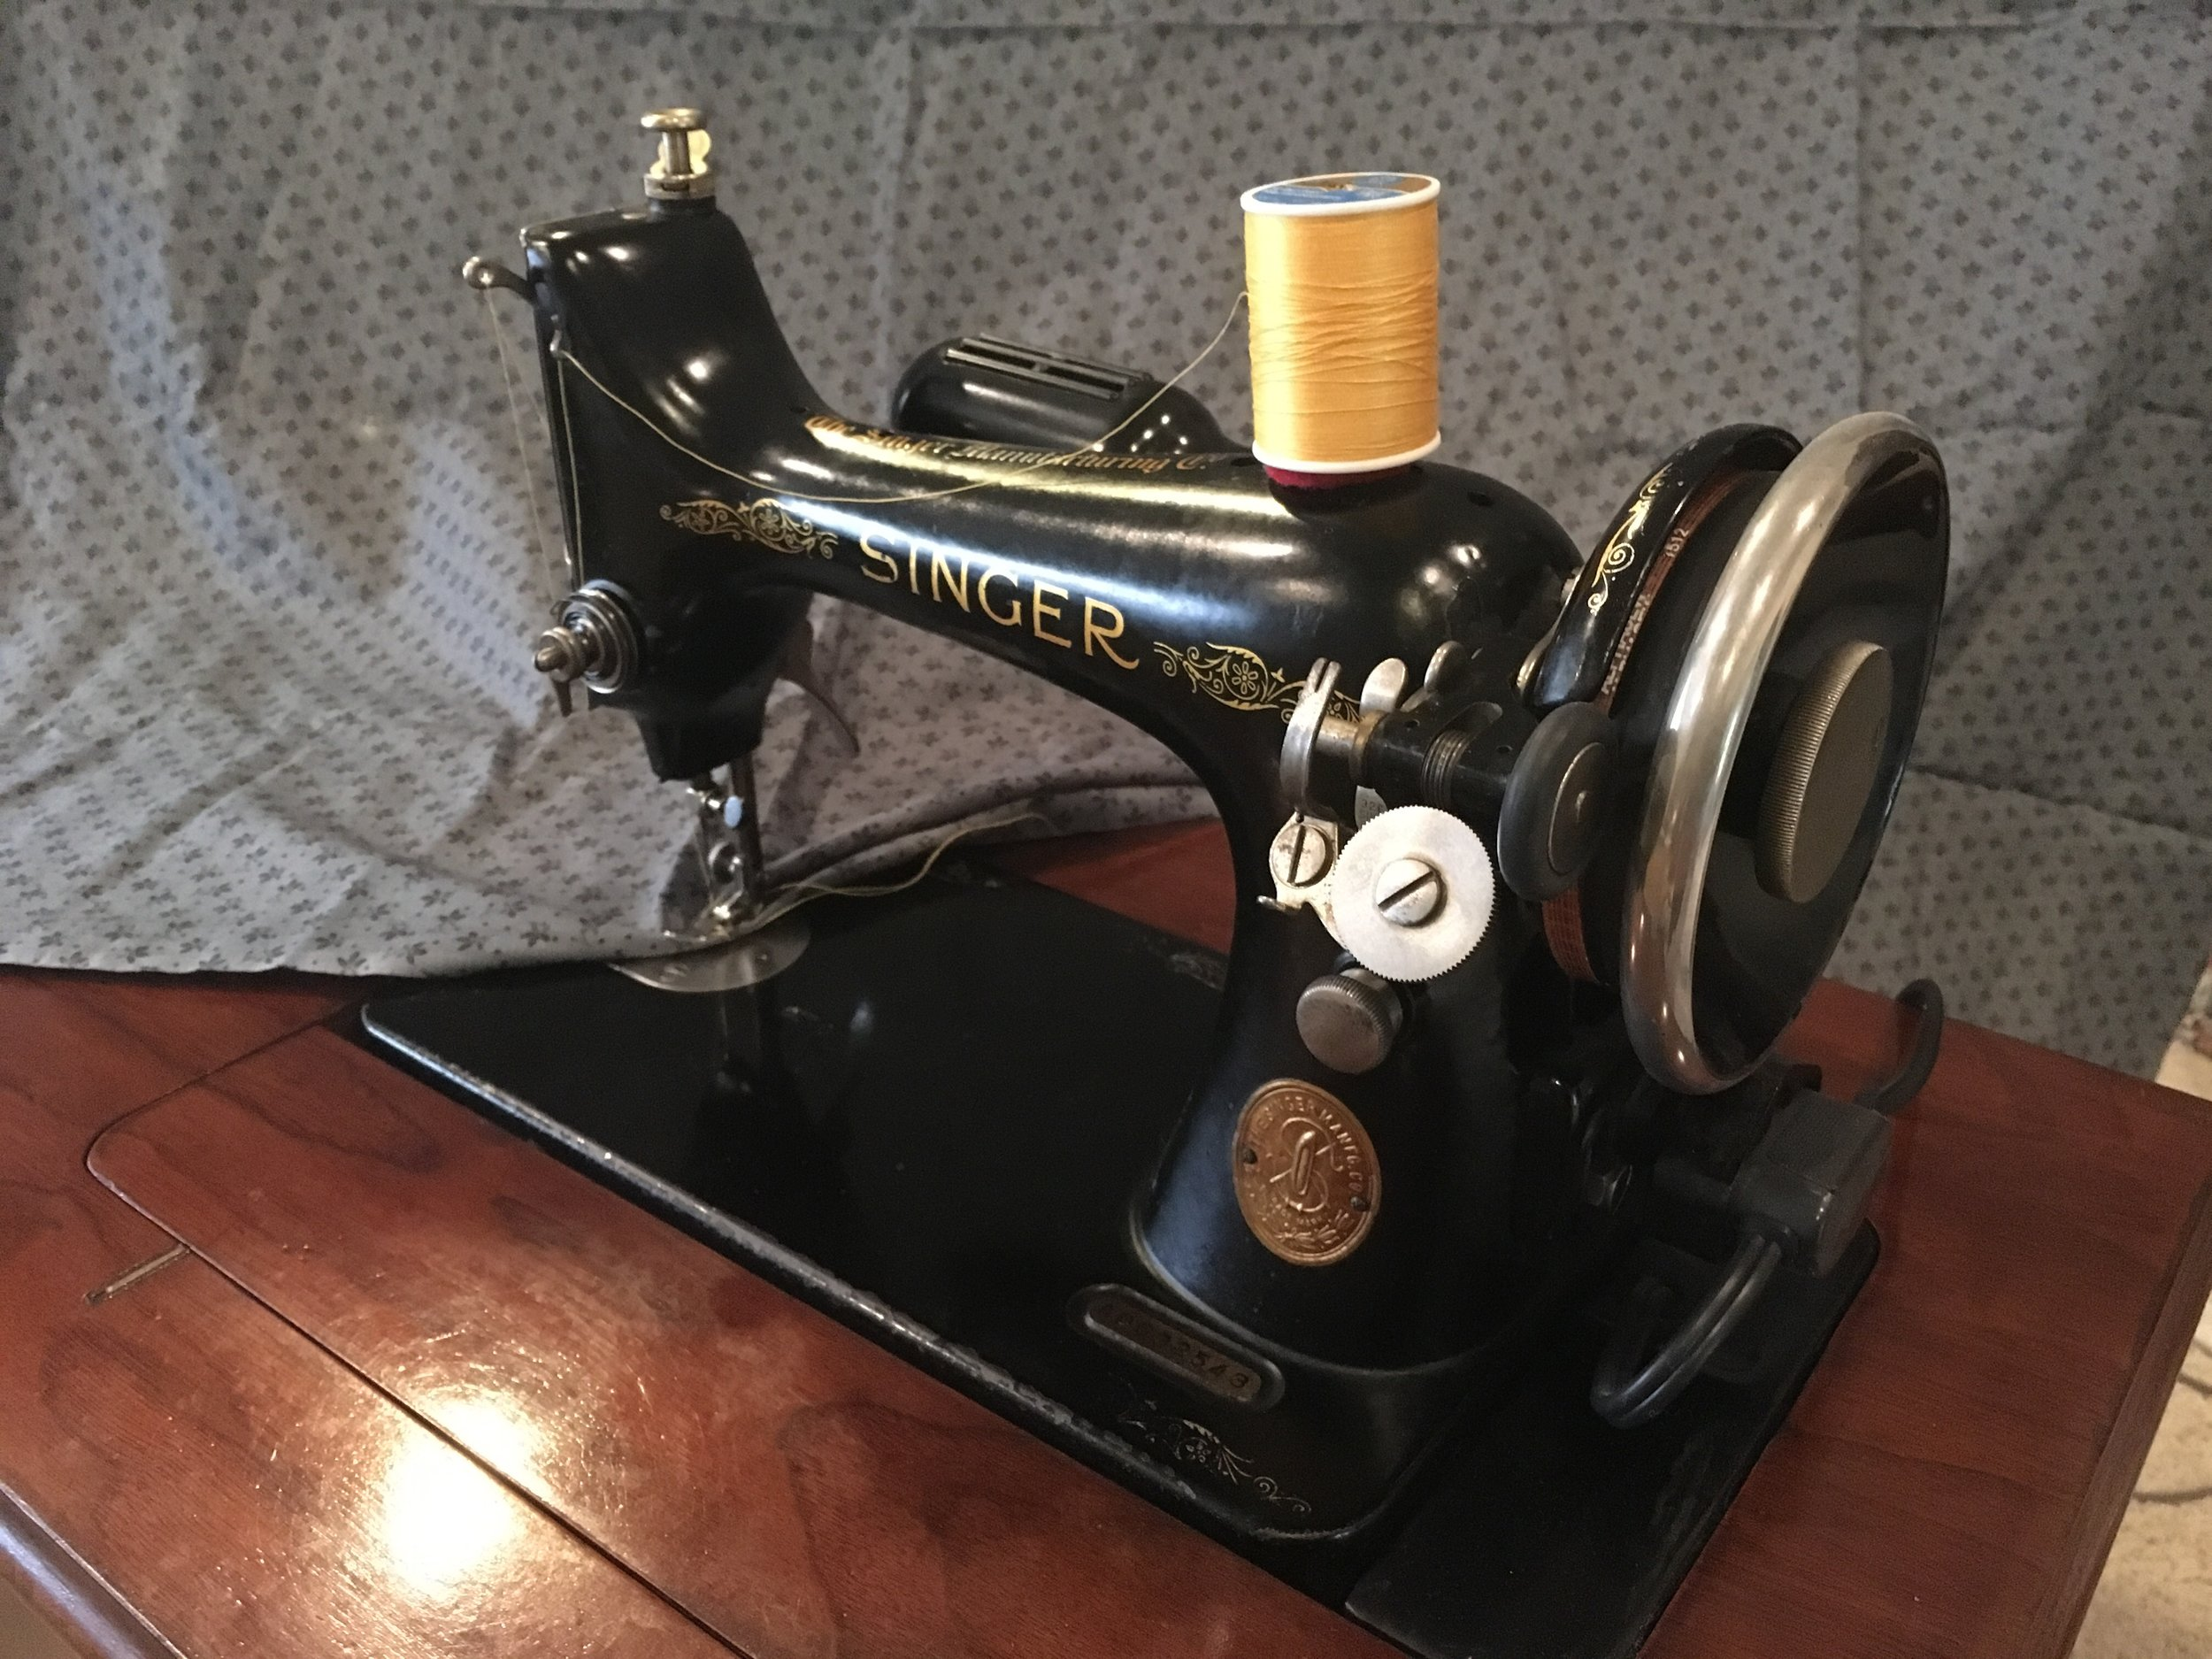 Singer Sewing Machine similar as in article except this one is electric.